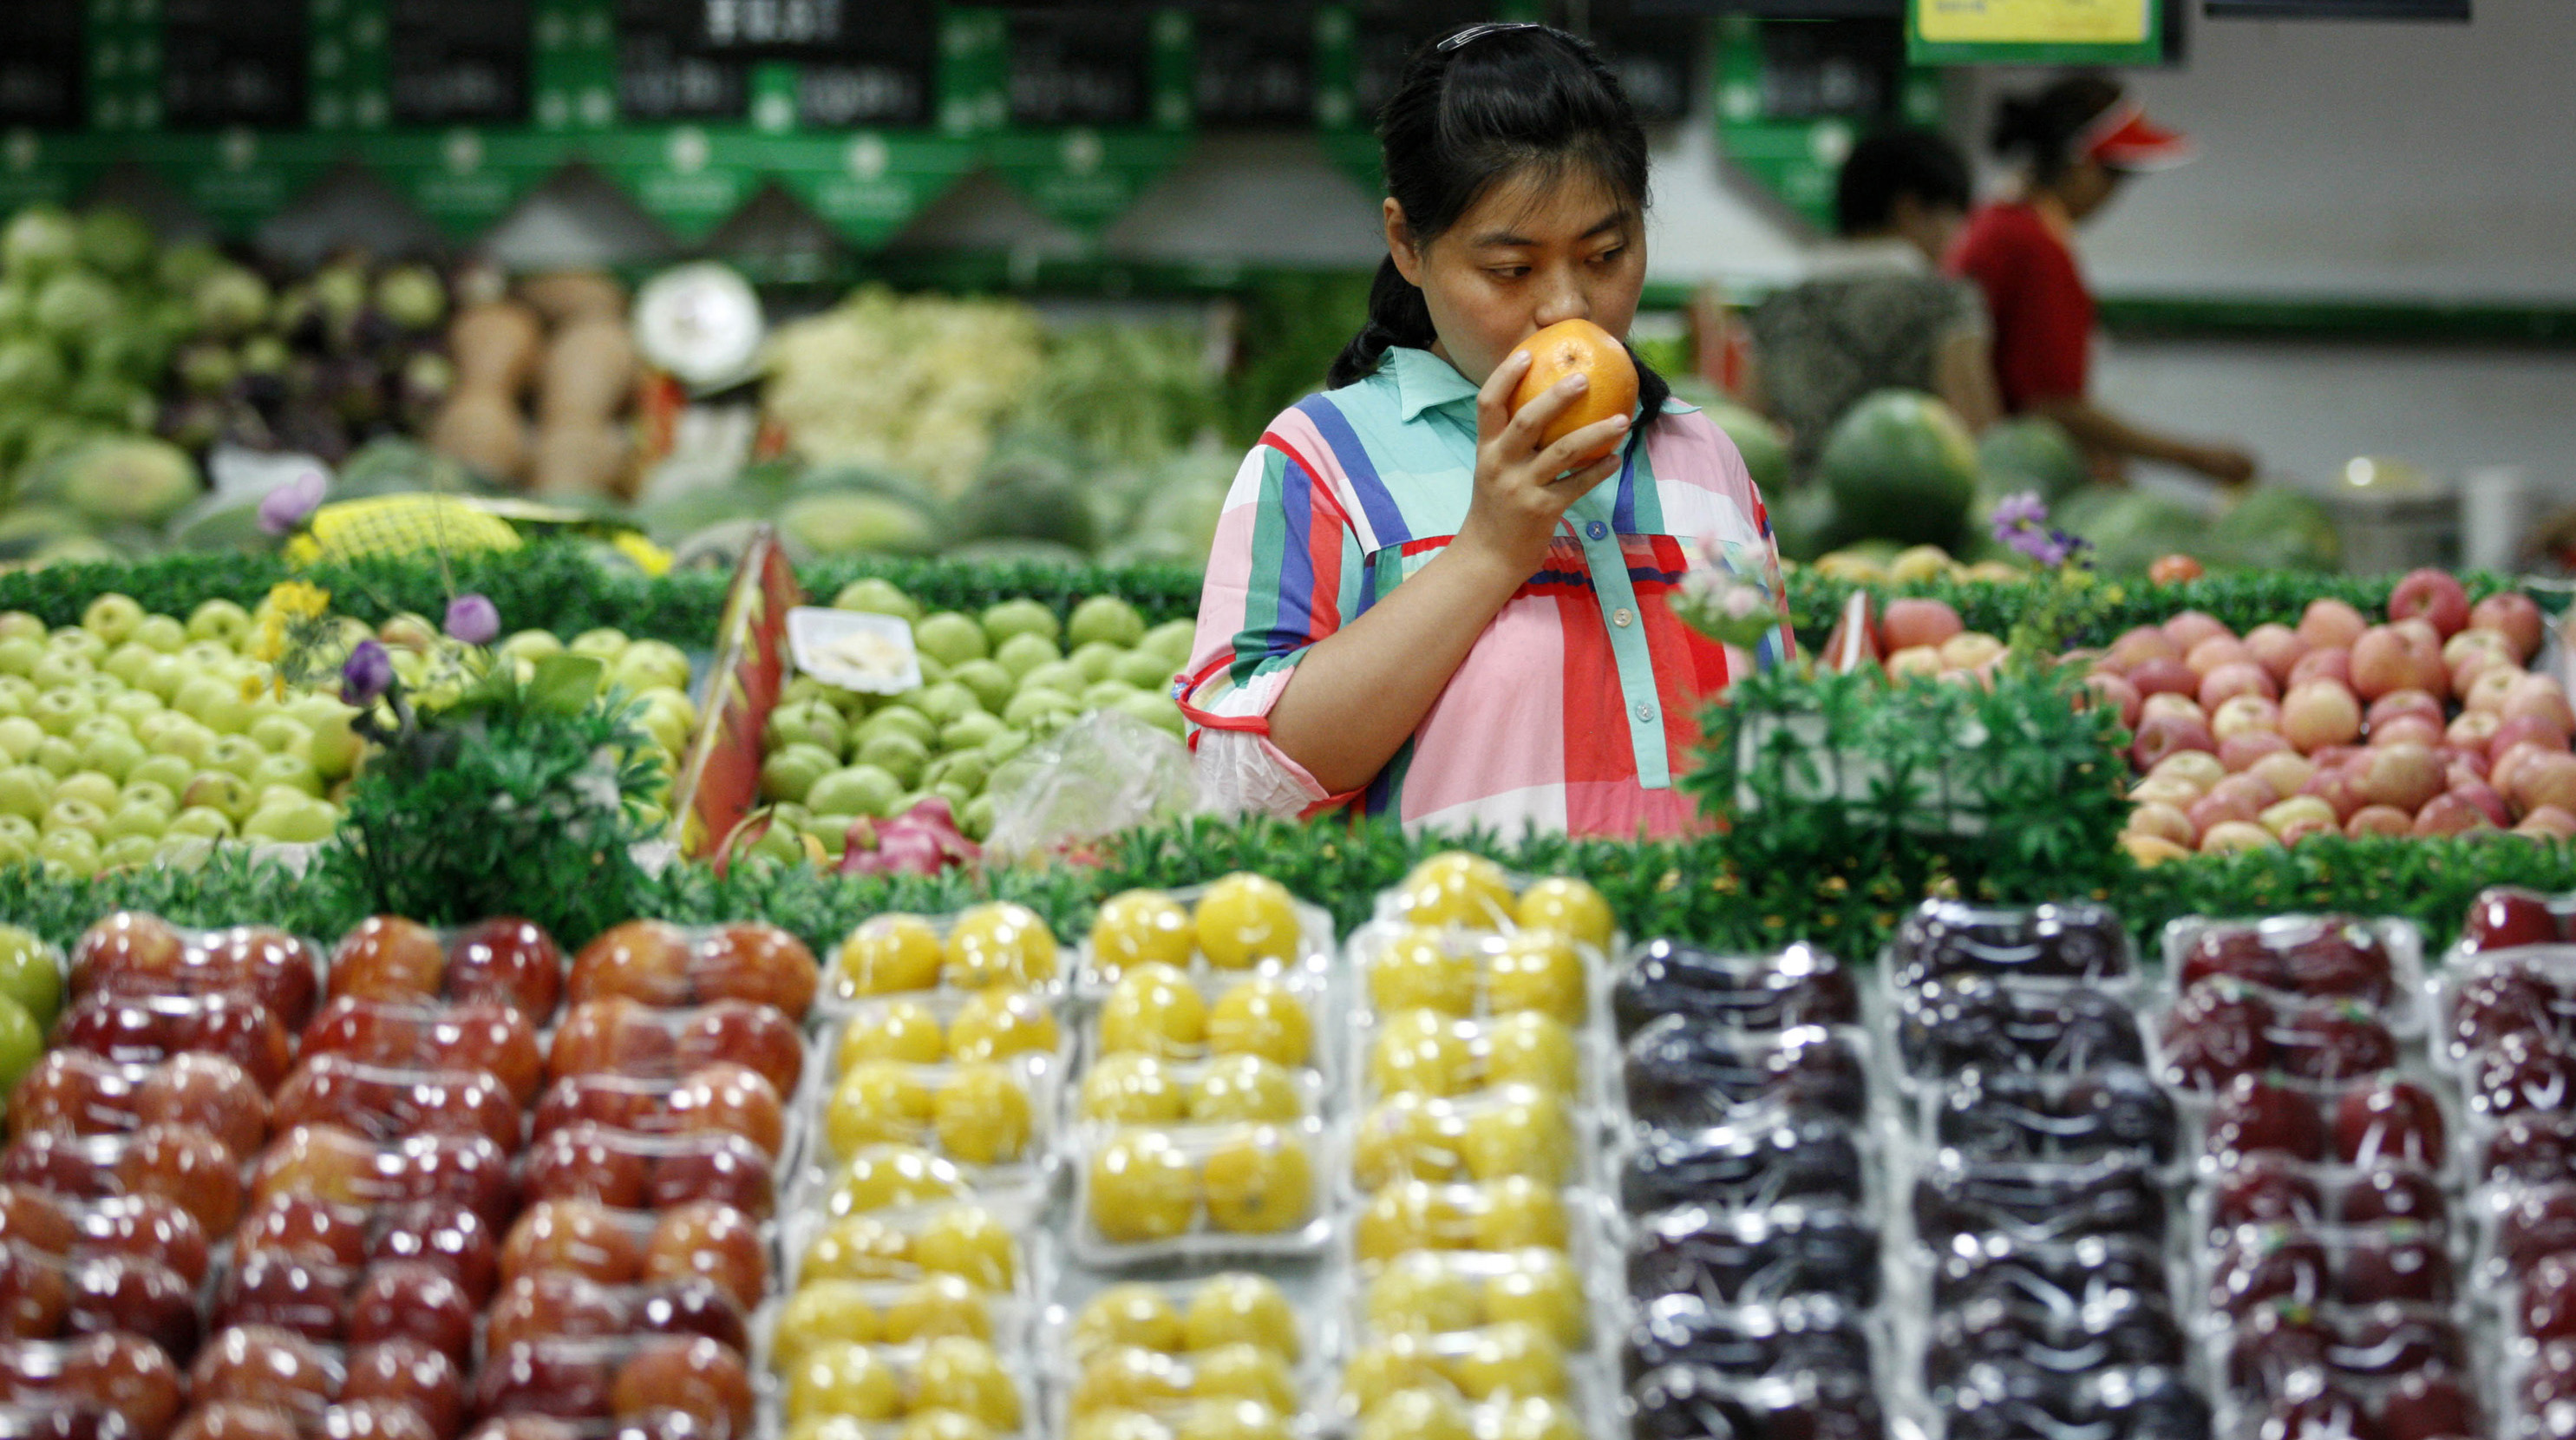 A woman selects fruits at a supermarket in Huaibei, Anhui province, July 9, 2014. China's consumer prices rose 2.3 percent in June from a year earlier while producer prices fell 1.1 percent, official data from the National Bureau of Statistics showed on Wednesday, largely in line with market expectations. REUTERS/Stringer (CHINA - Tags: BUSINESS FOOD SOCIETY) CHINA OUT. NO COMMERCIAL OR EDITORIAL SALES IN CHINA - GM1EA790UI301